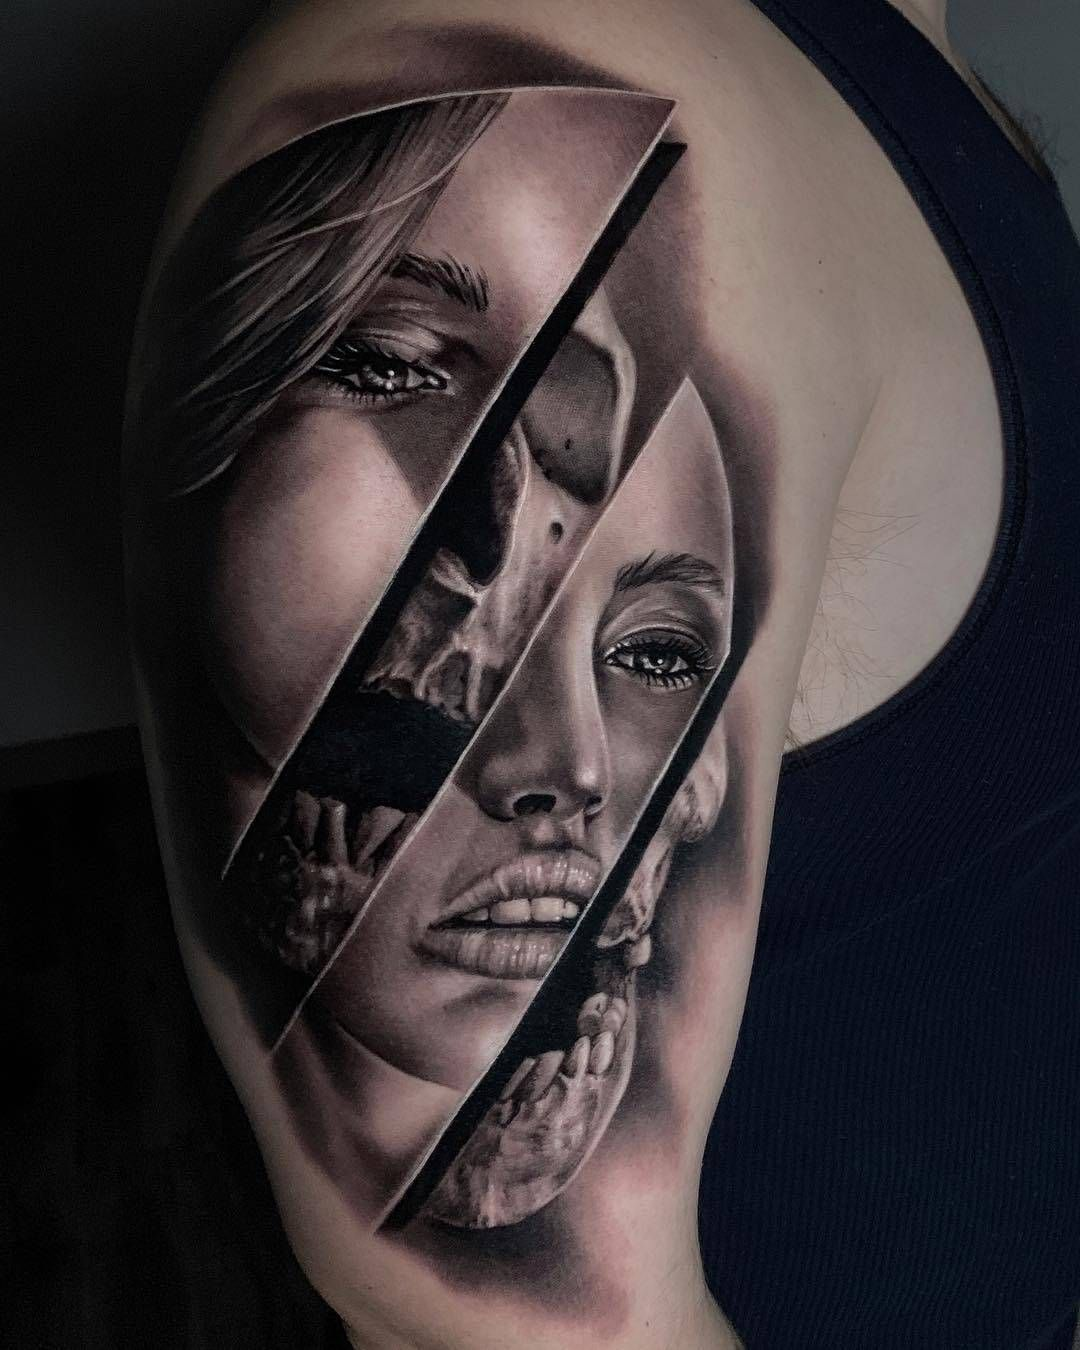 Creative blackgrey realism tattoos for guys face